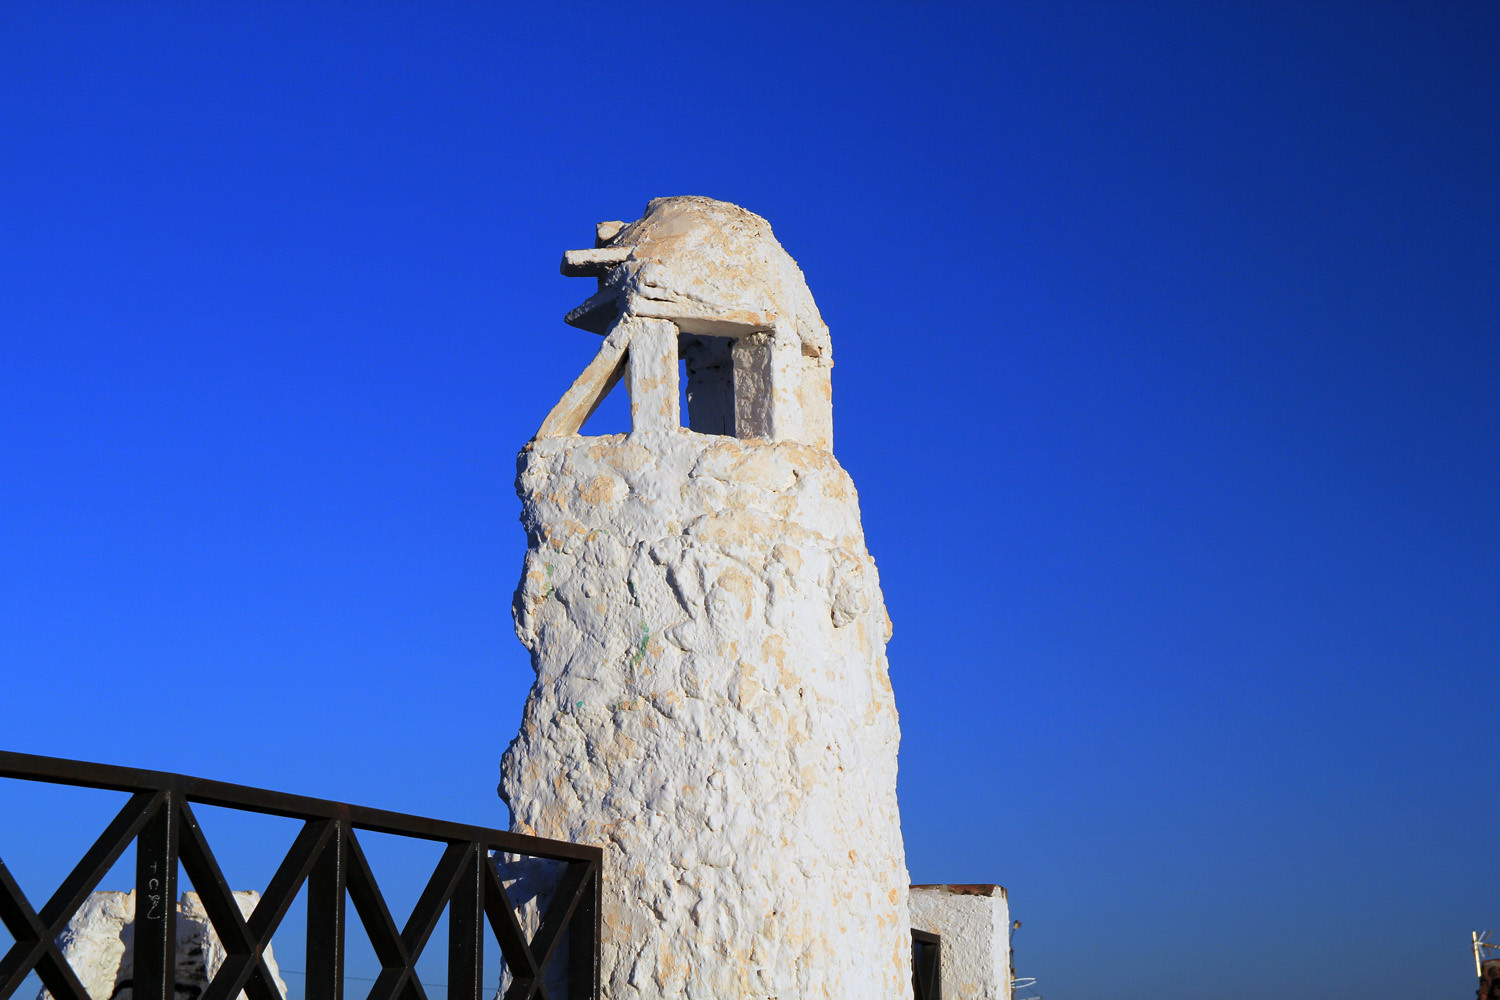 A Typical Chimney of a Cave House in Guadix